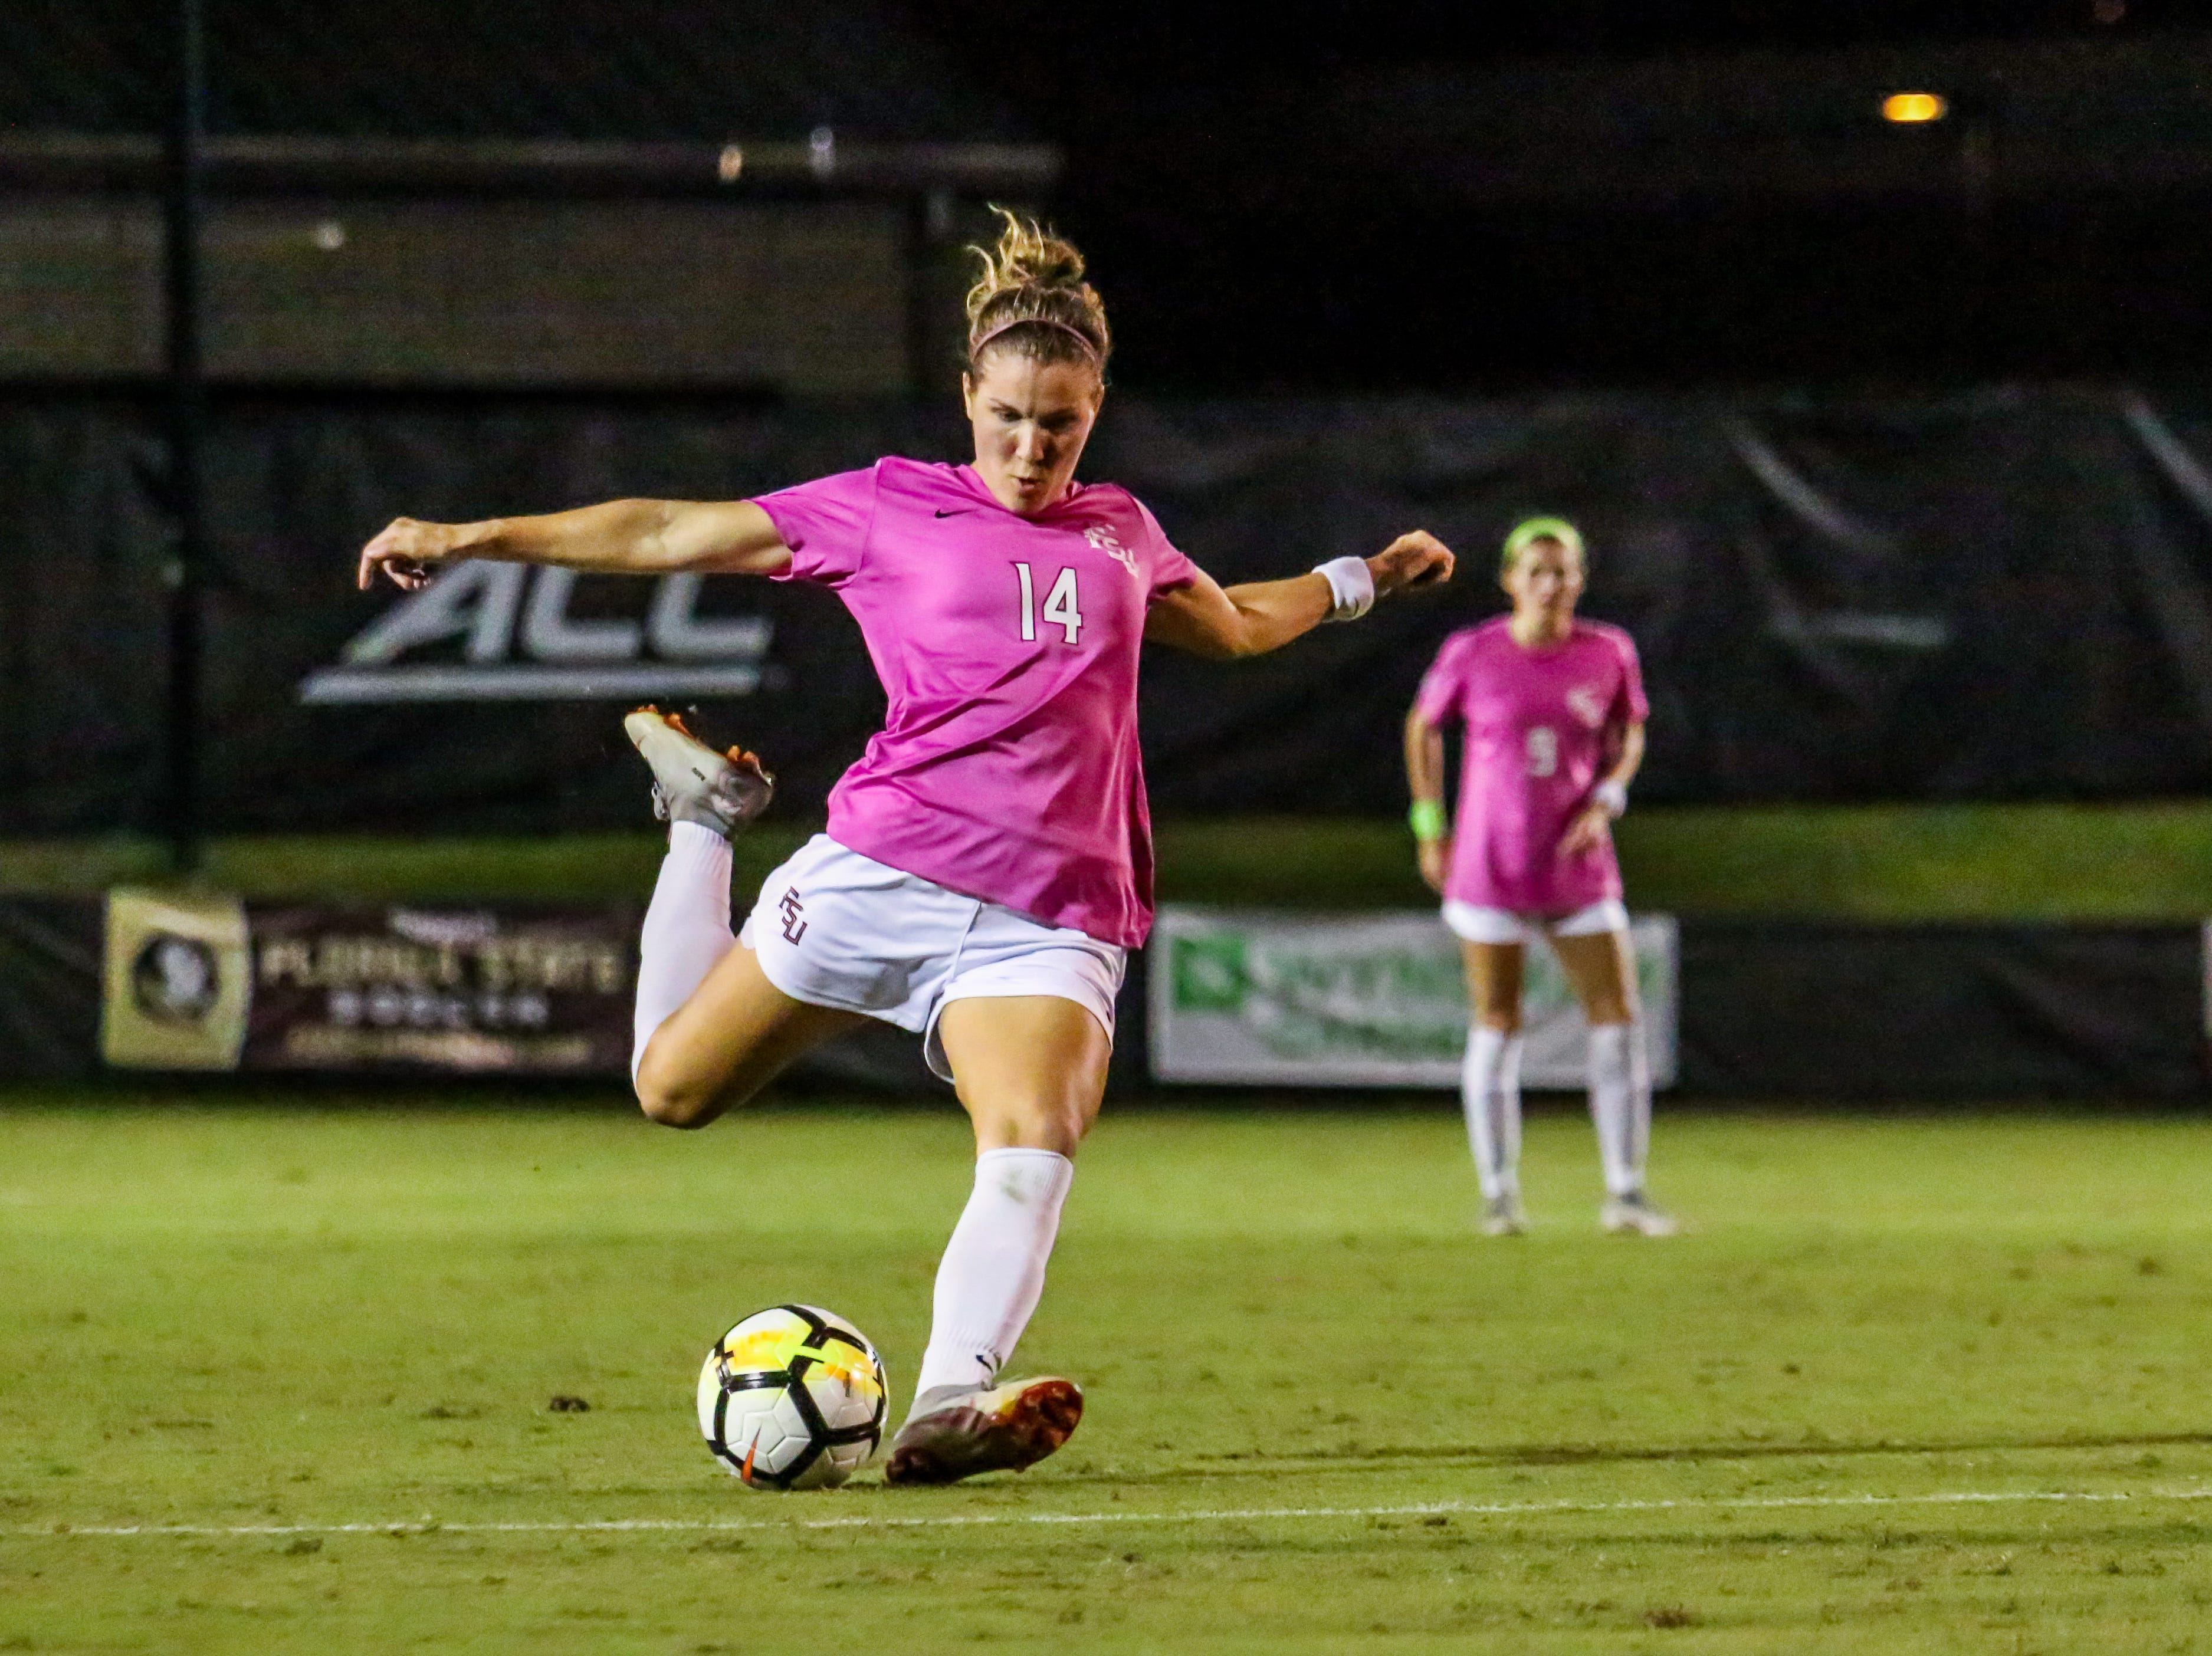 Natalia Kuikka (14) and the Florida State Women's Soccer team had a frustrating night on Thursday, October 4th, losing to Clemson 1-0 at the Seminole Soccer Complex.